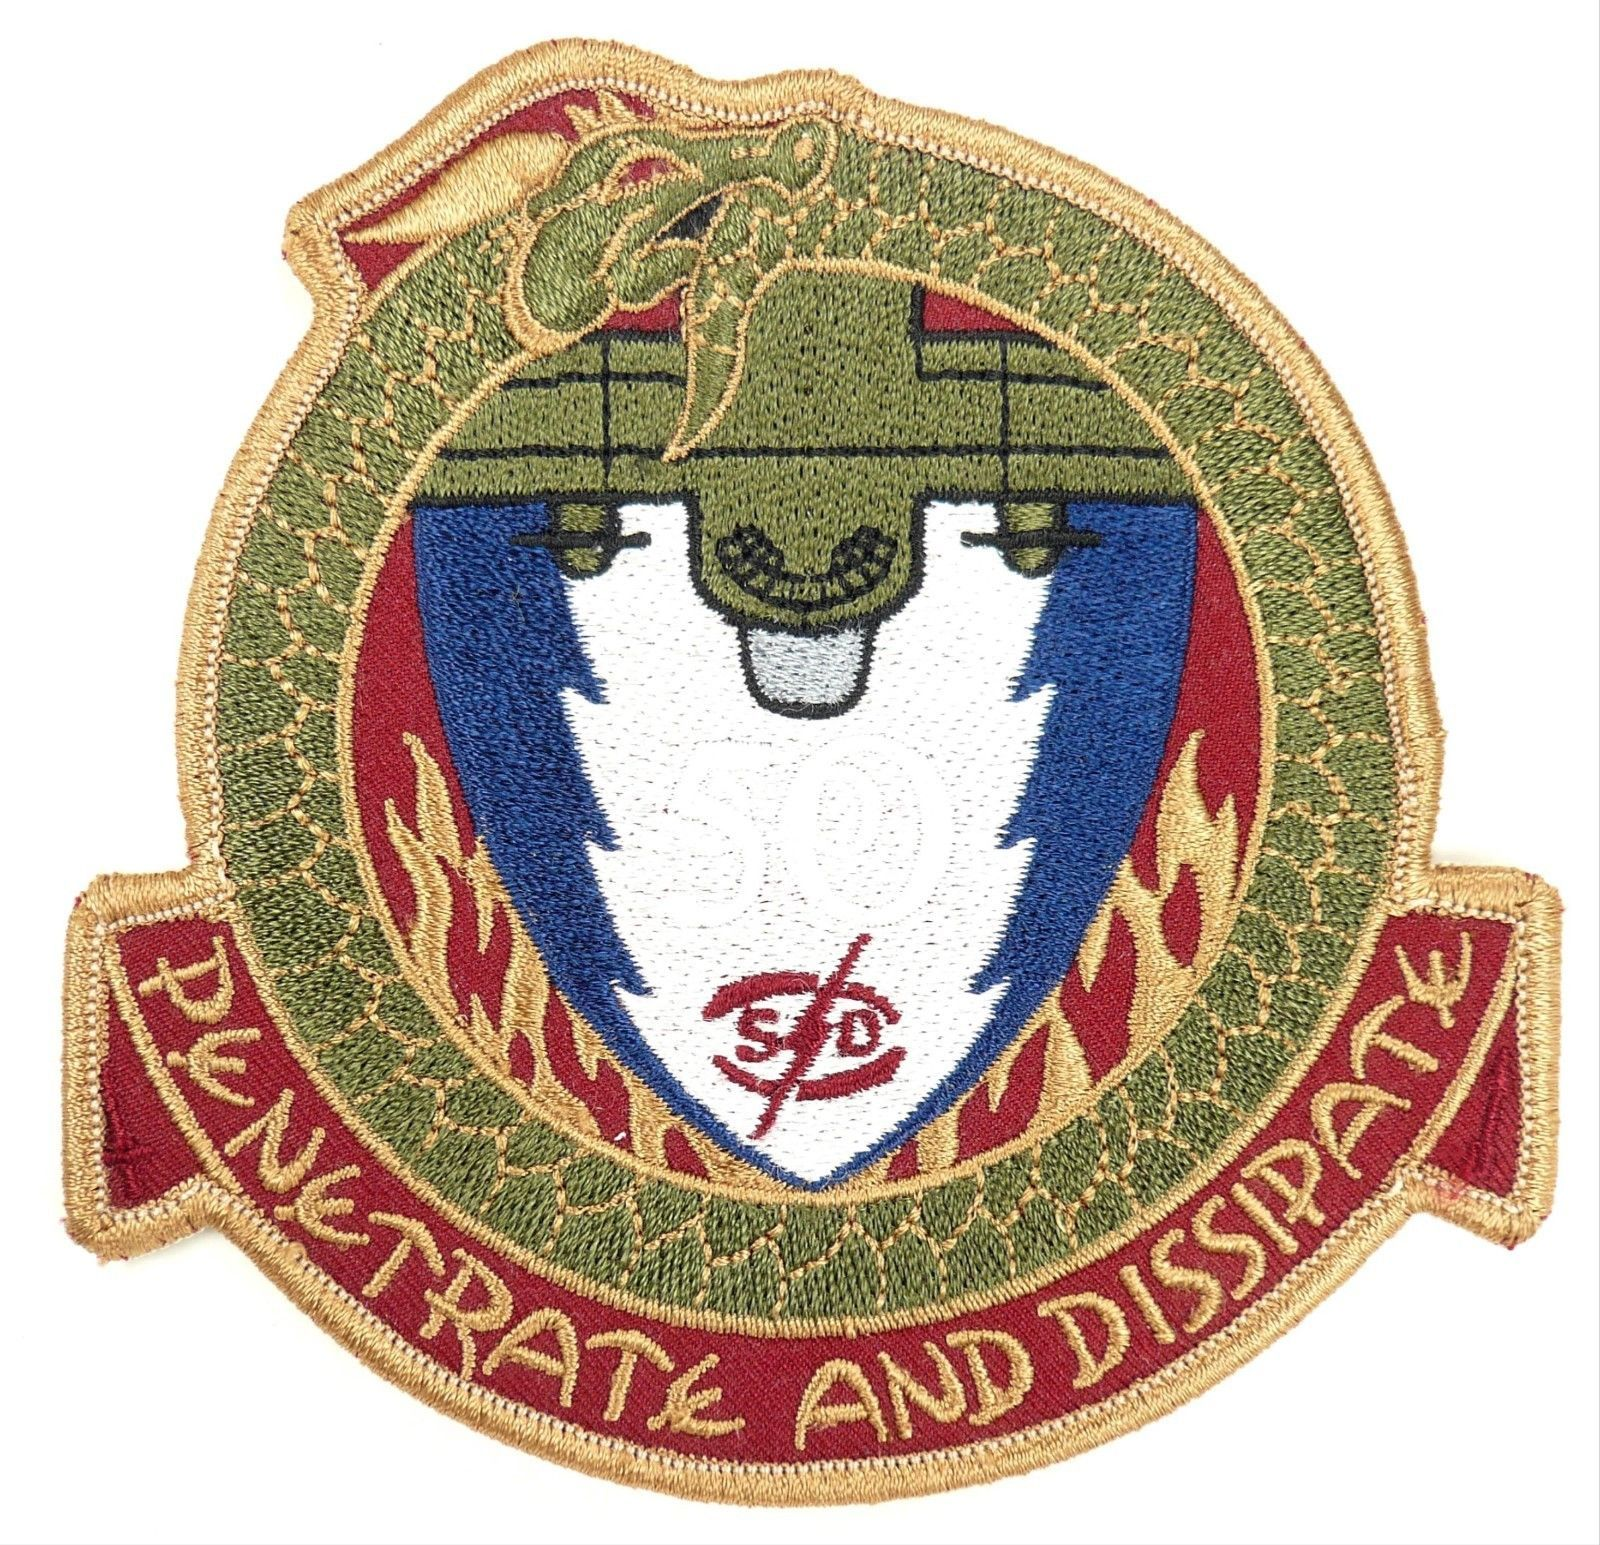 USAF 17th SOS SPECIAL OPERATIONS SQUADRON GOOSE50 PATCH